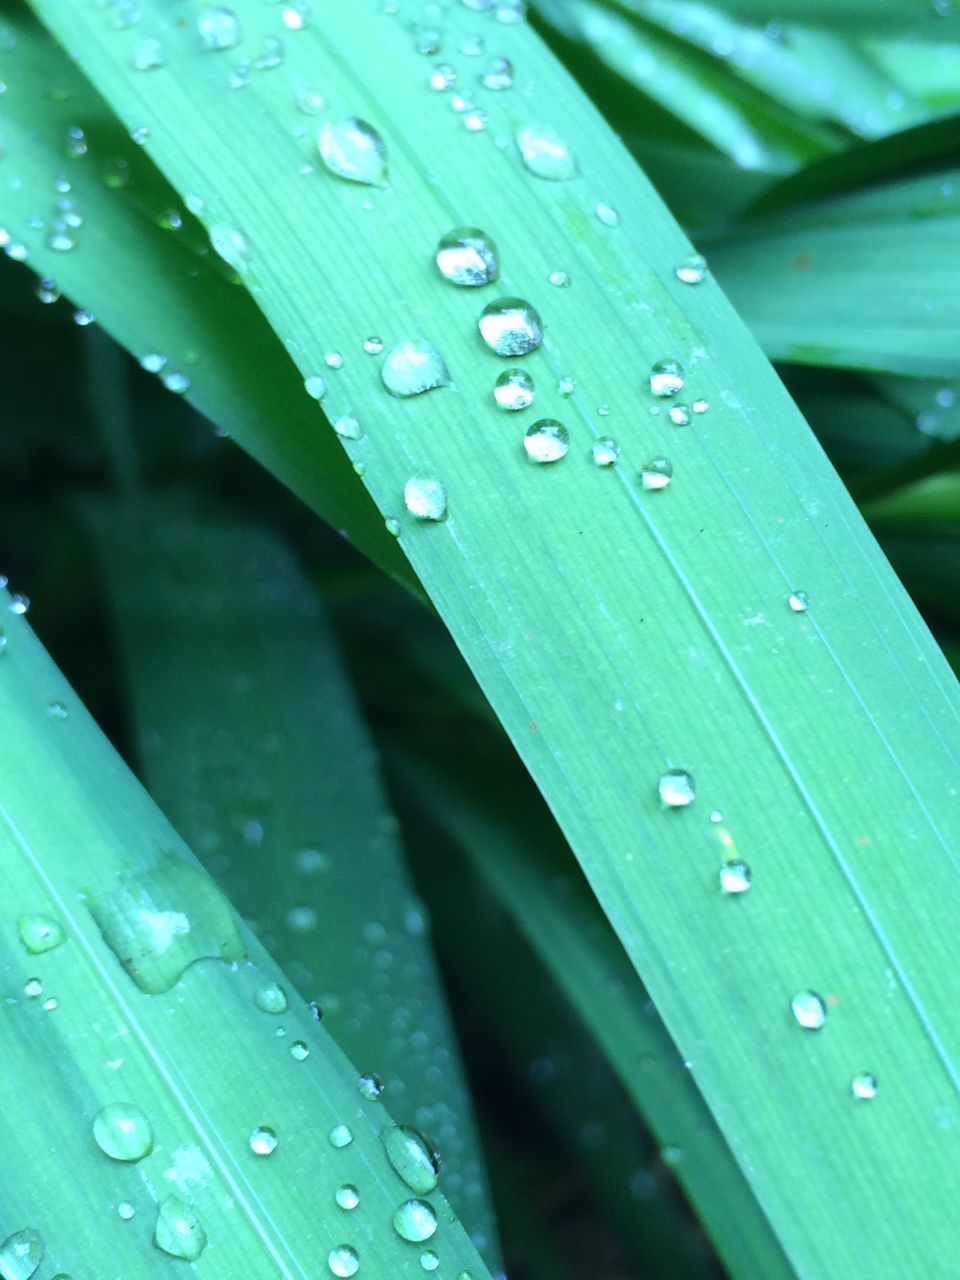 drop, green color, wet, rain, leaf, nature, raindrop, outdoors, water, day, close-up, weather, no people, beauty in nature, growth, freshness, fragility, banana leaf, plant, backgrounds, animal themes